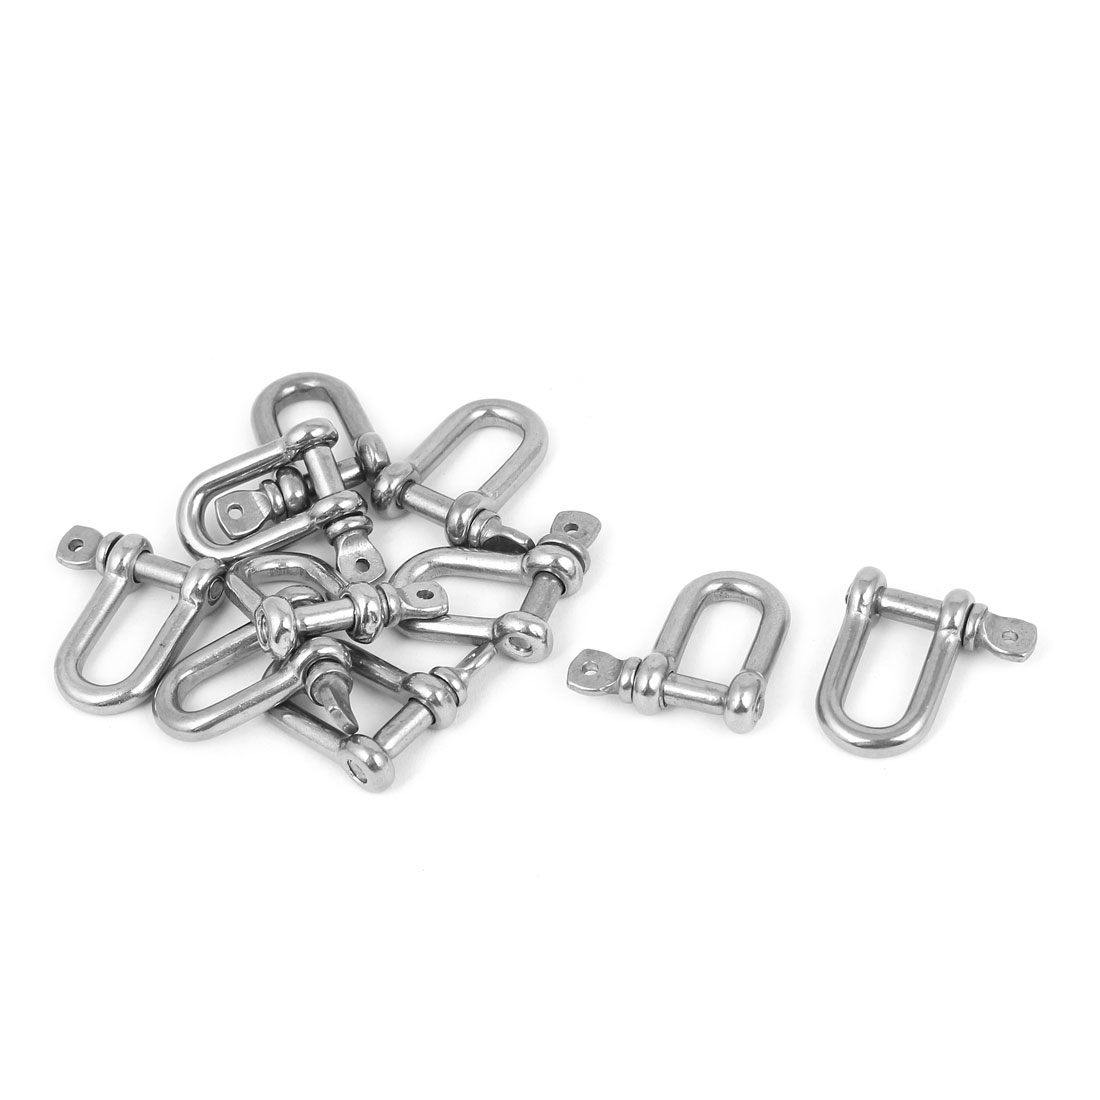 10PCS Stainless Steel Wire Rope Fastener Bow D Shackles 4mm Thread